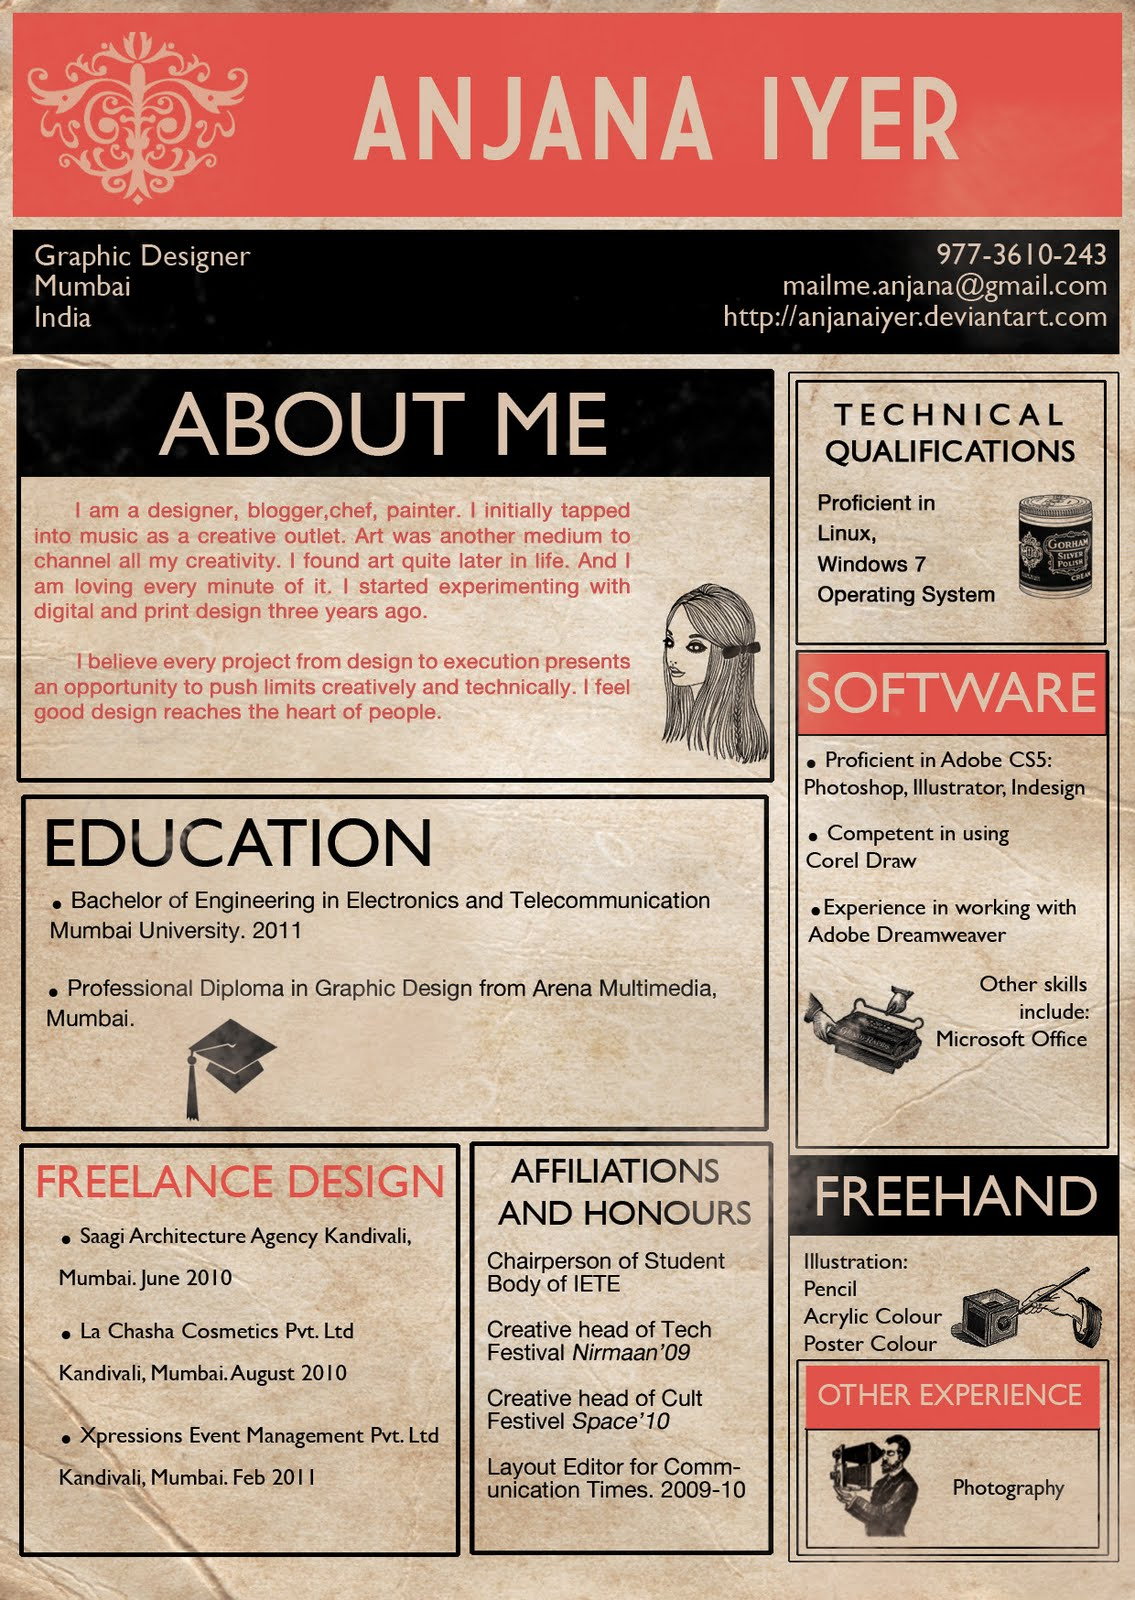 Free Online Infographic Maker By Canva The 4 Cardinal Rules Of Infographic R233;sum233;s Practical